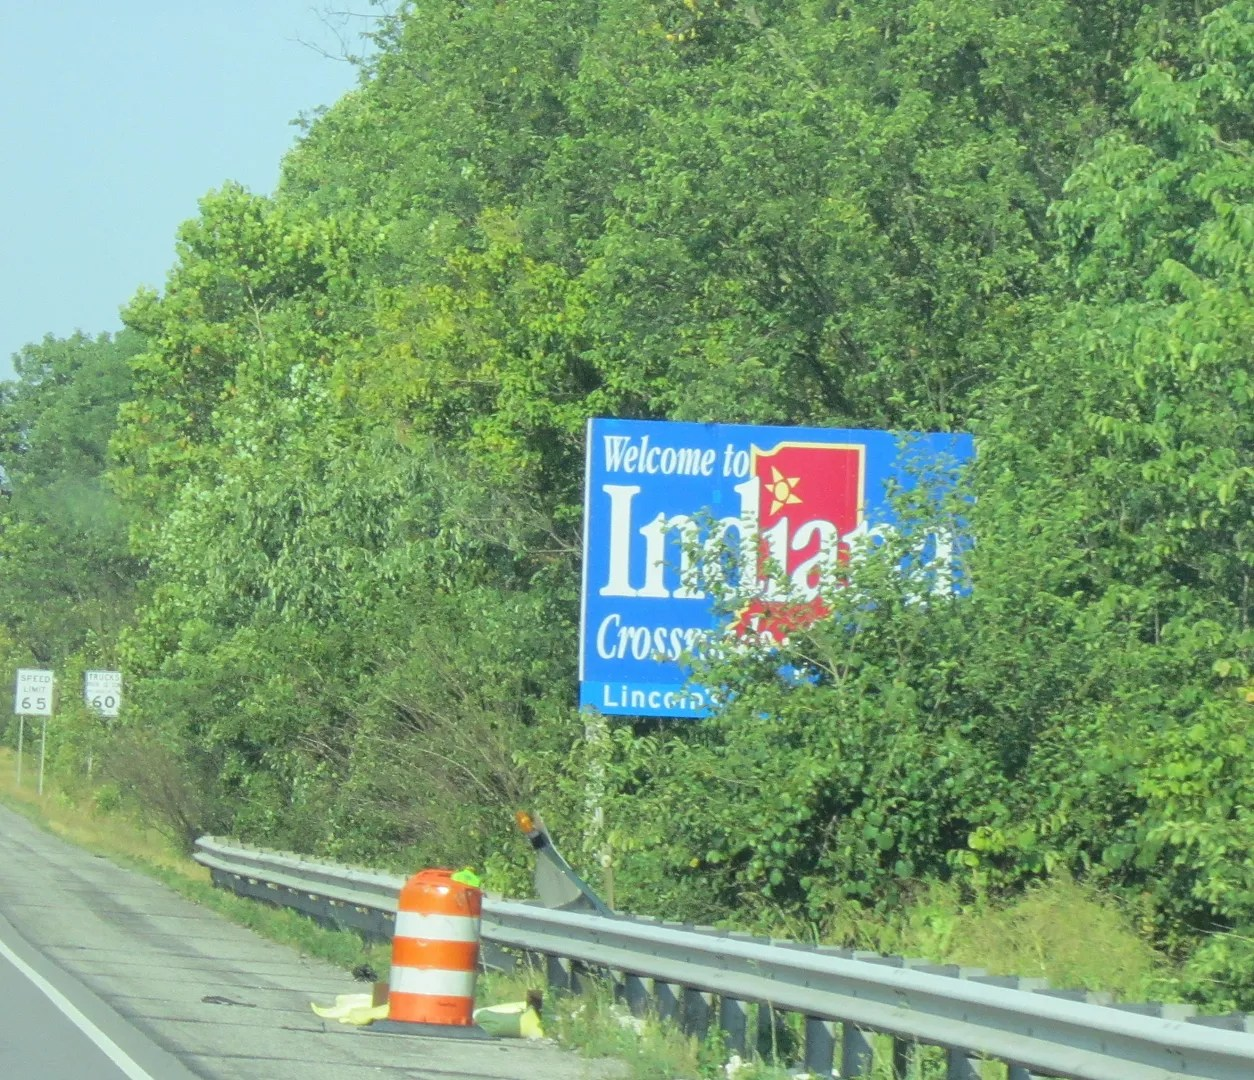 Indiana welcome sign